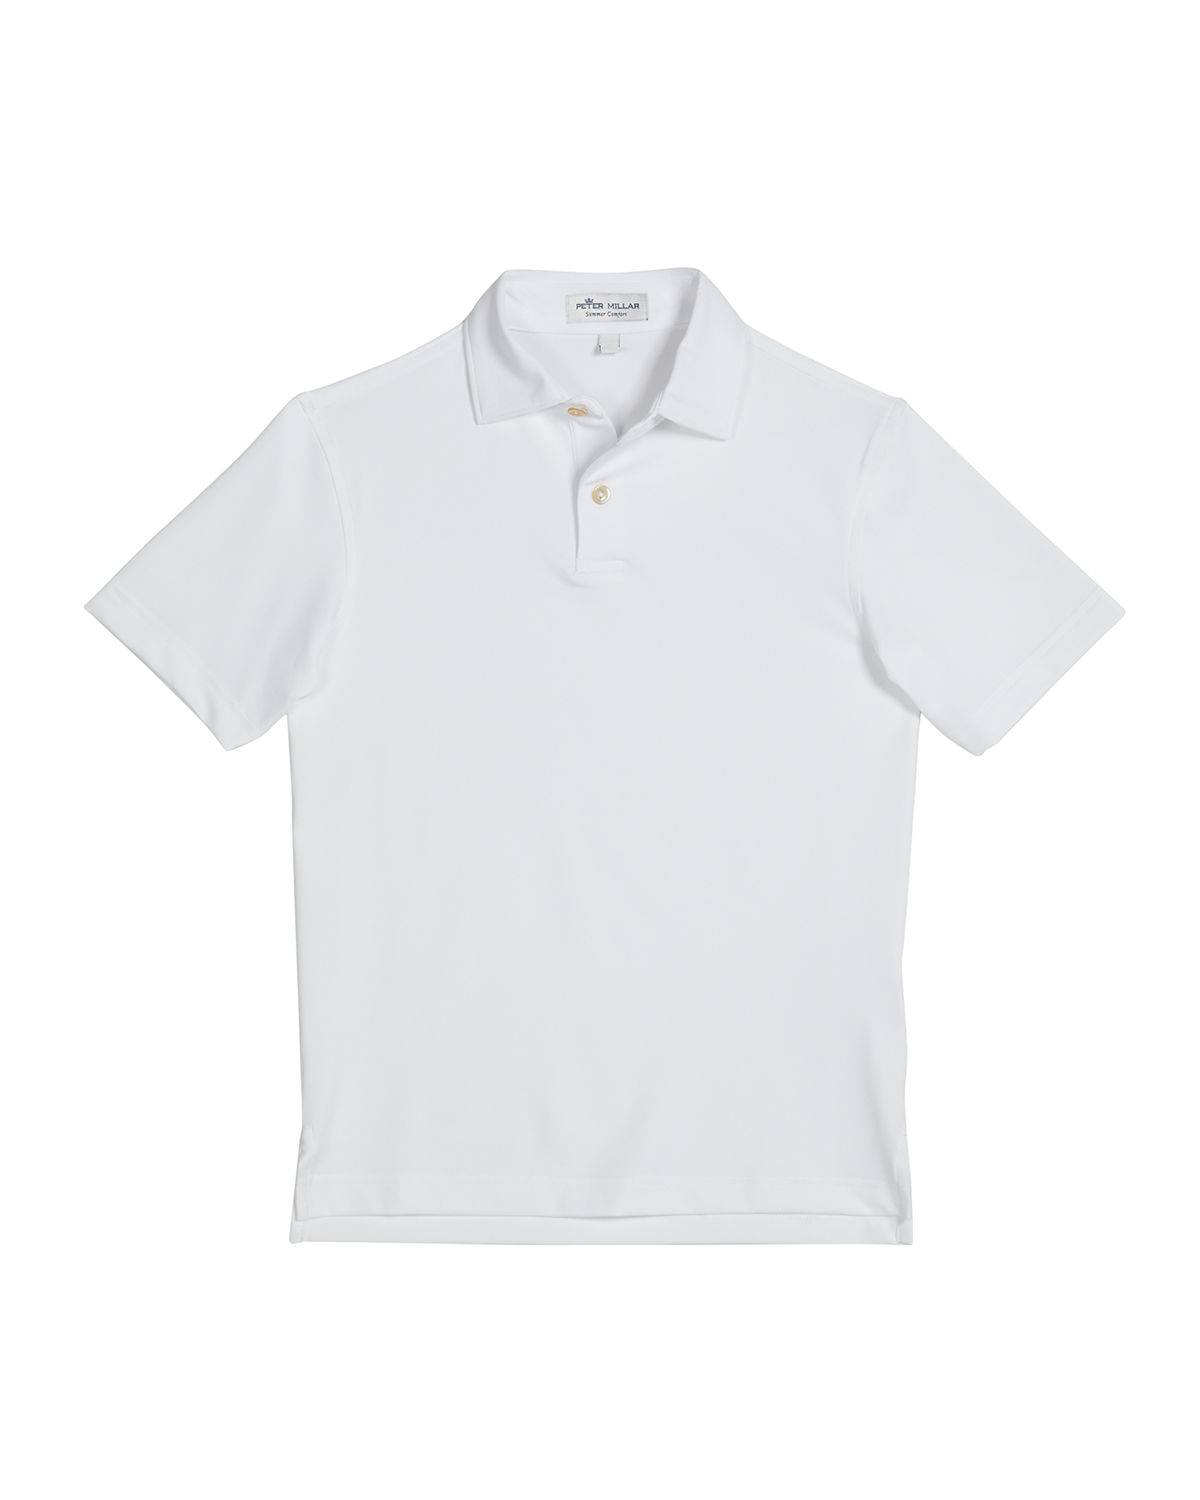 Peter Millar Boy's Solid Short-Sleeve Sport Jersey Polo Shirt, Size XXS-XL - Size: Extra Large